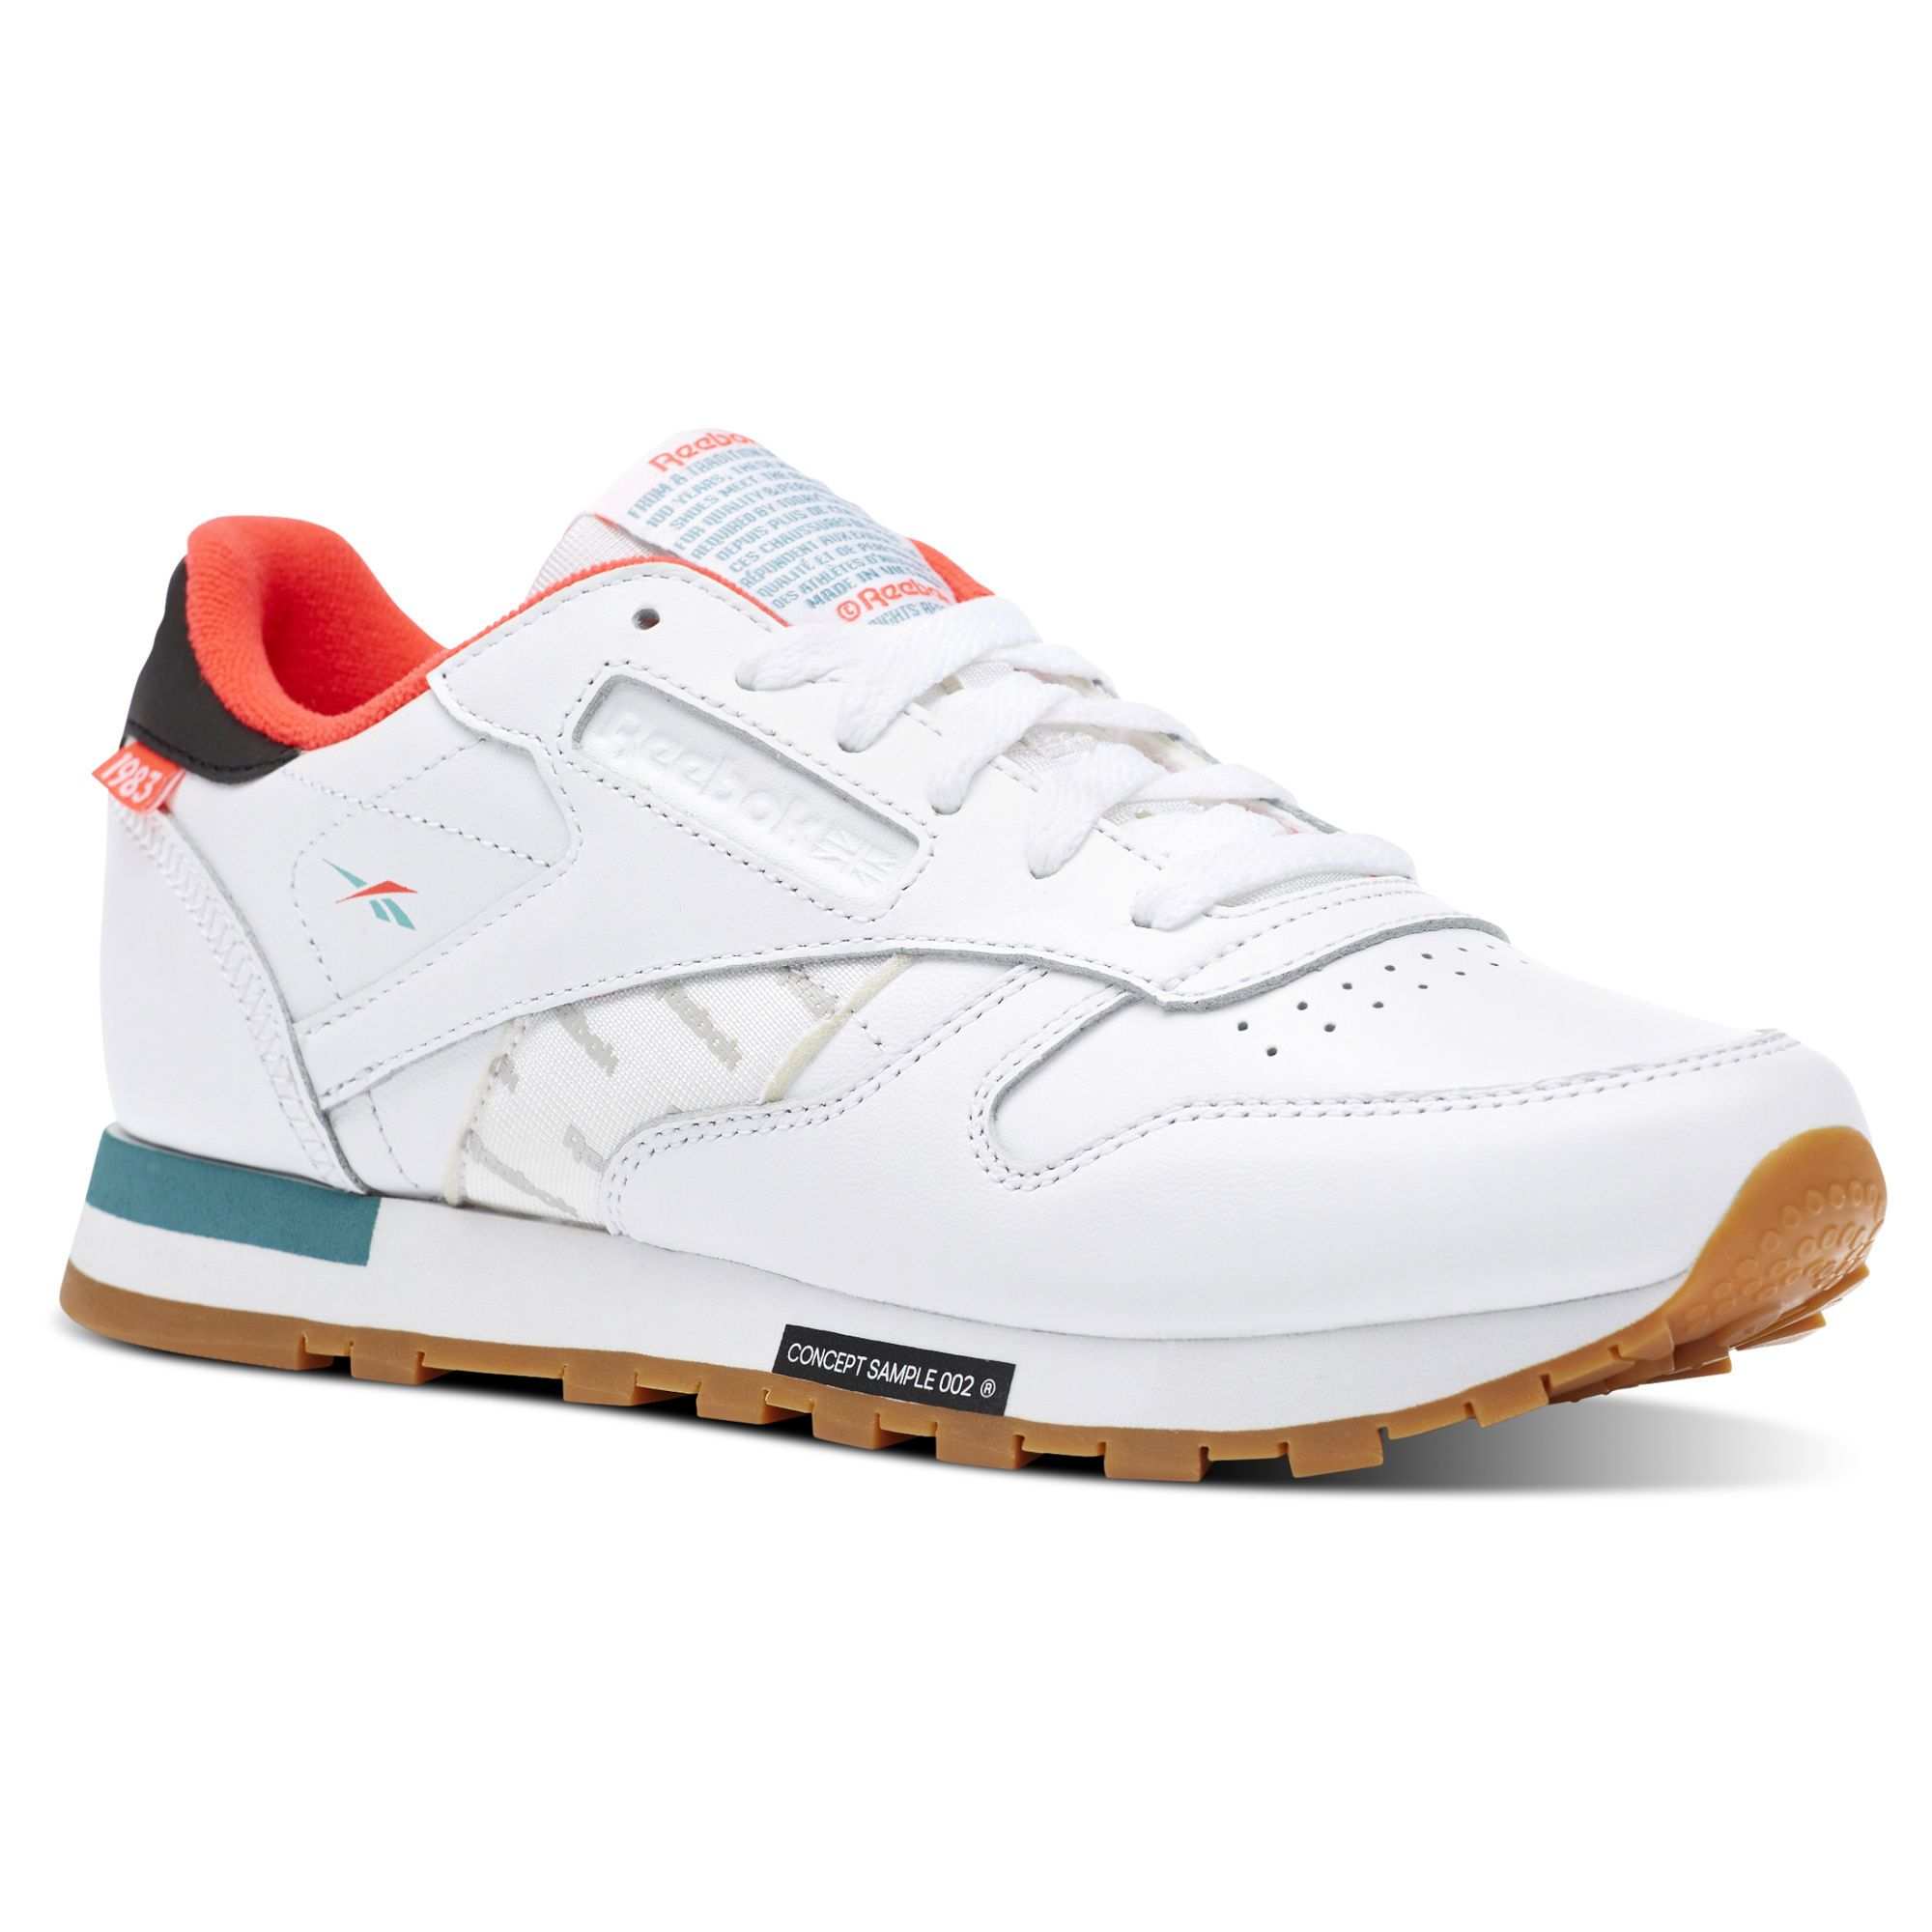 d3ab18eca10 ... australia shop for classic leather altered multicolor at reebok. see  all the styles and colors